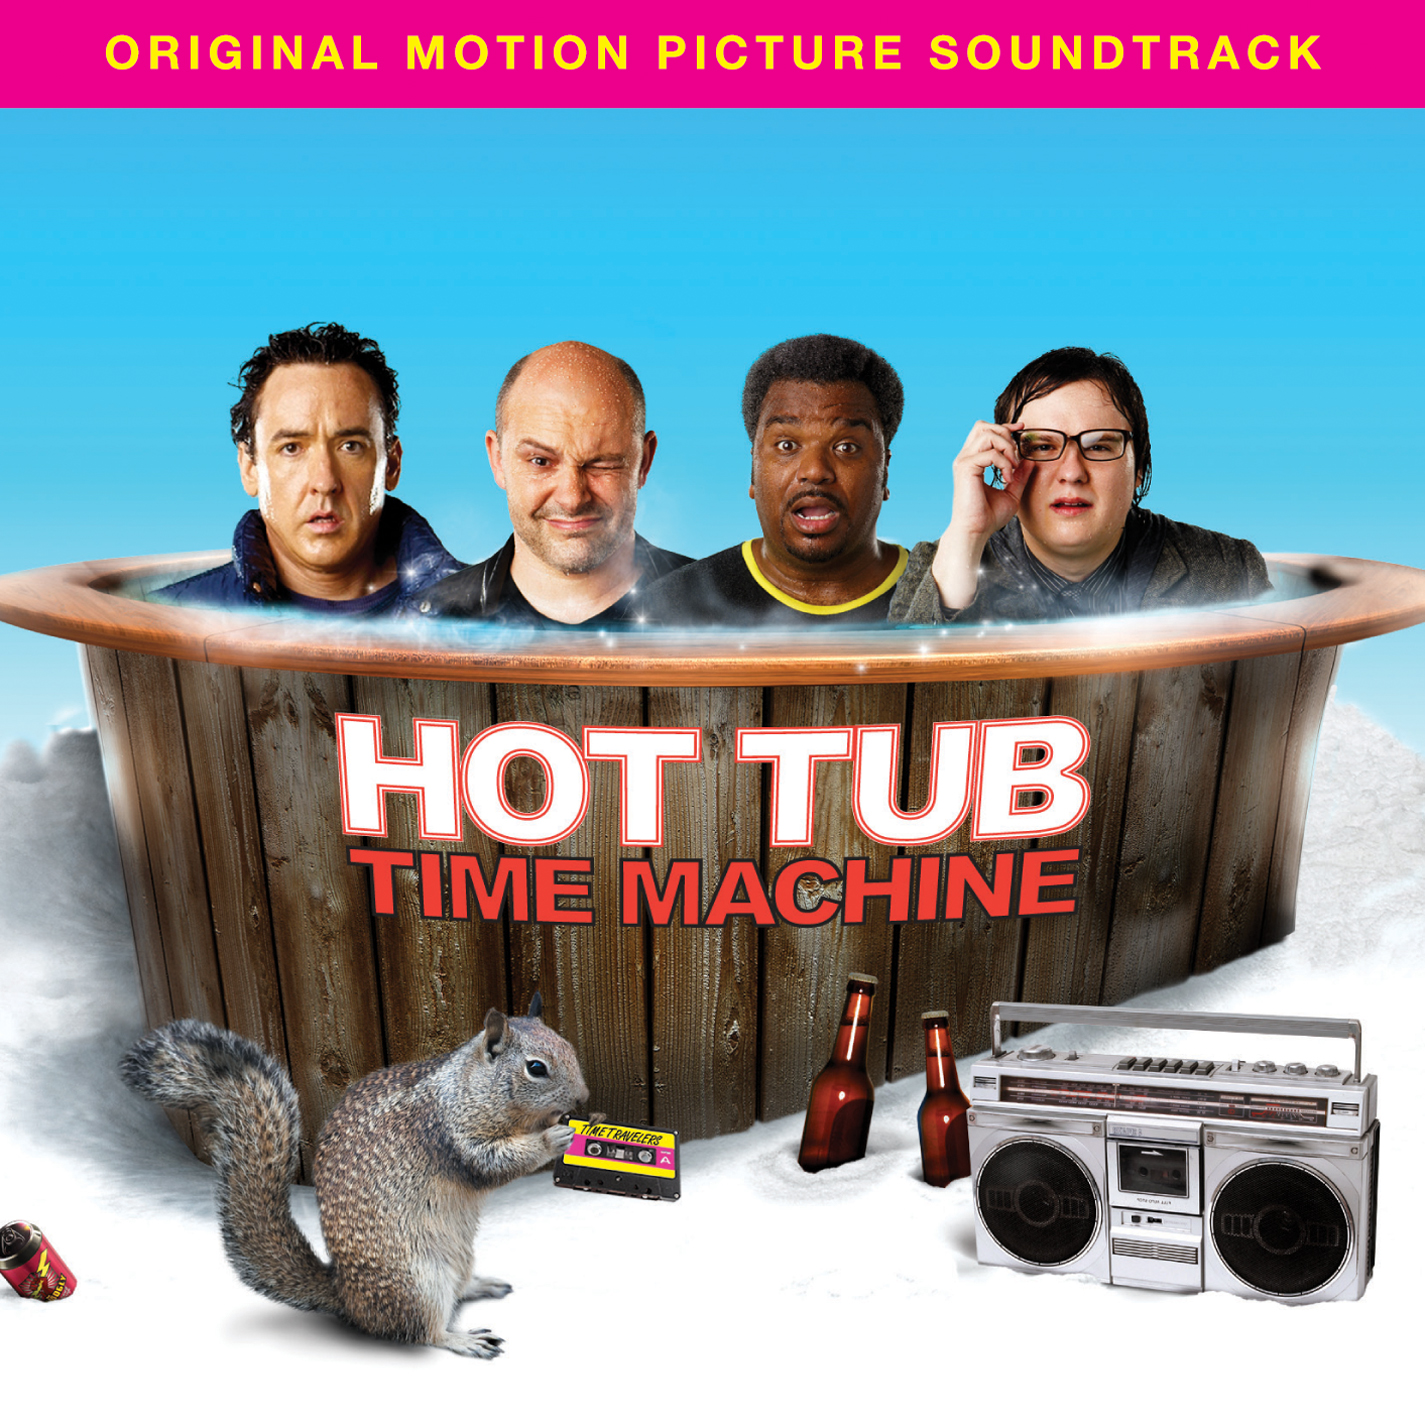 'Hot Tub Time Machine' soundtrack features New Order, Replacements, Echo & Bunnymen